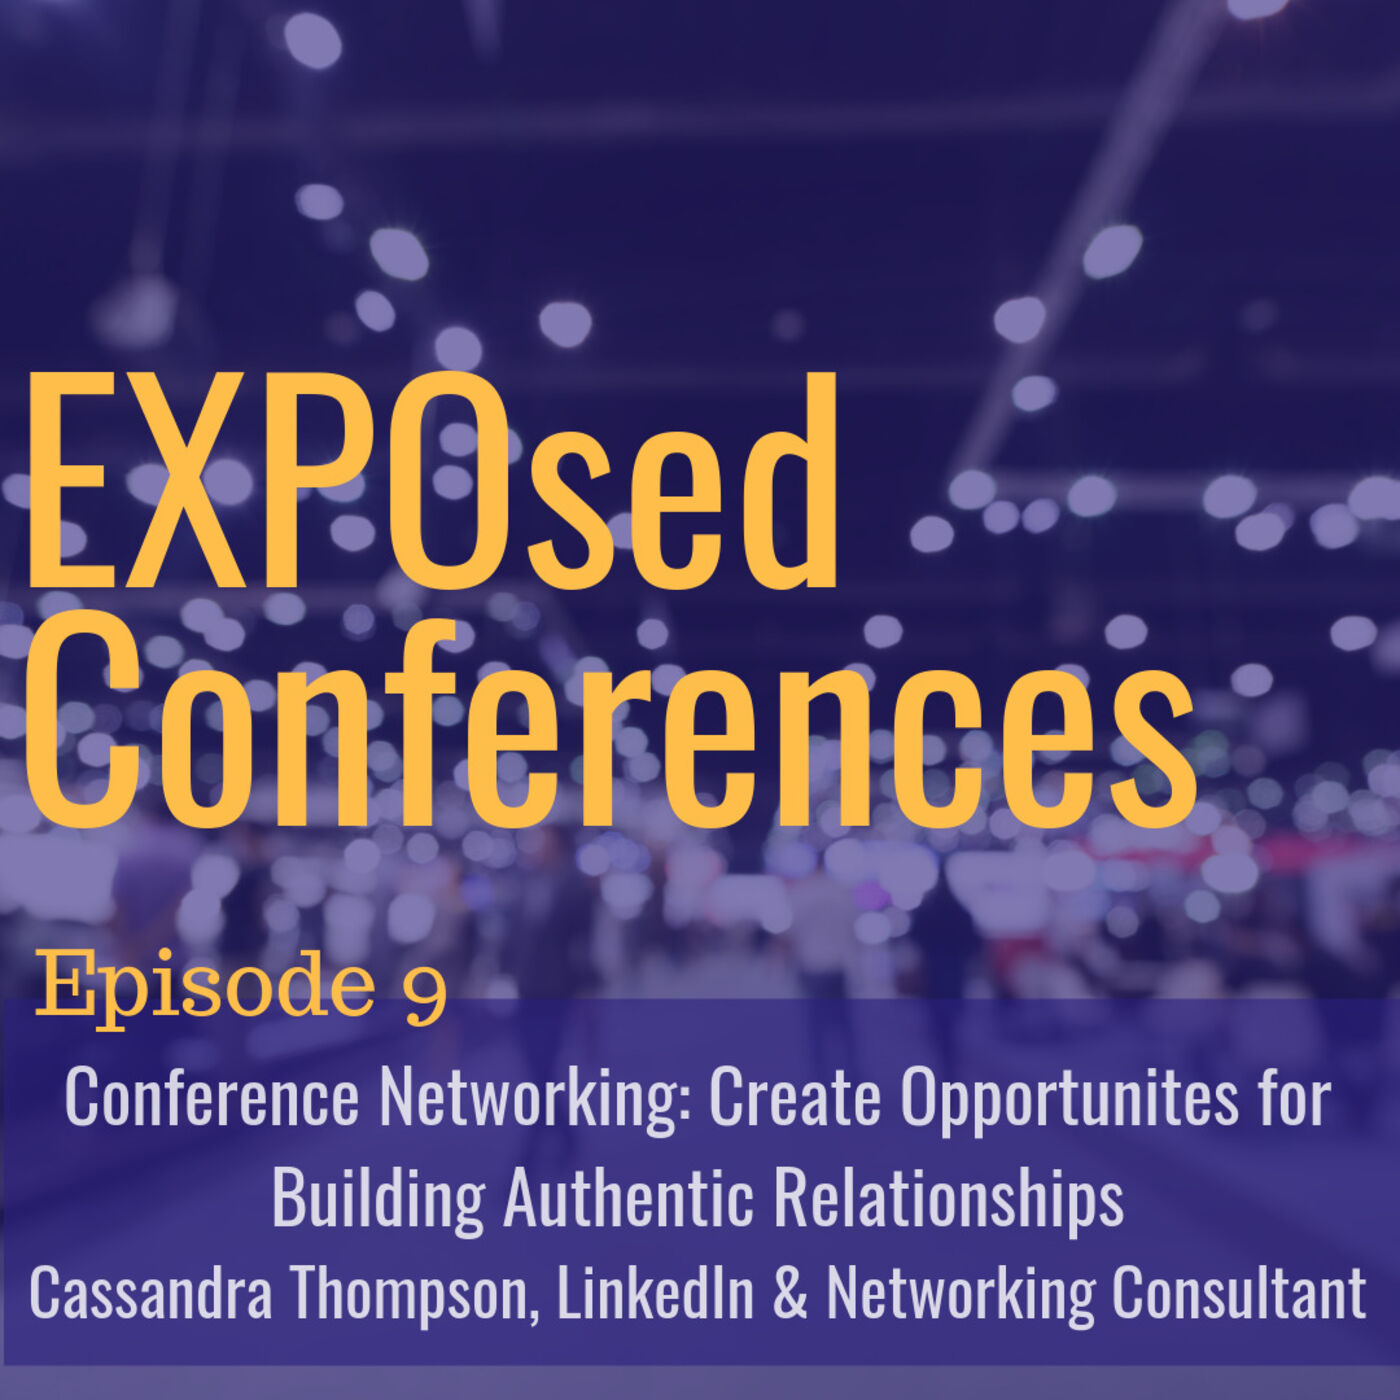 Episode 09. Conference Networking: Creating Opportunities for Building Authentic Relationships